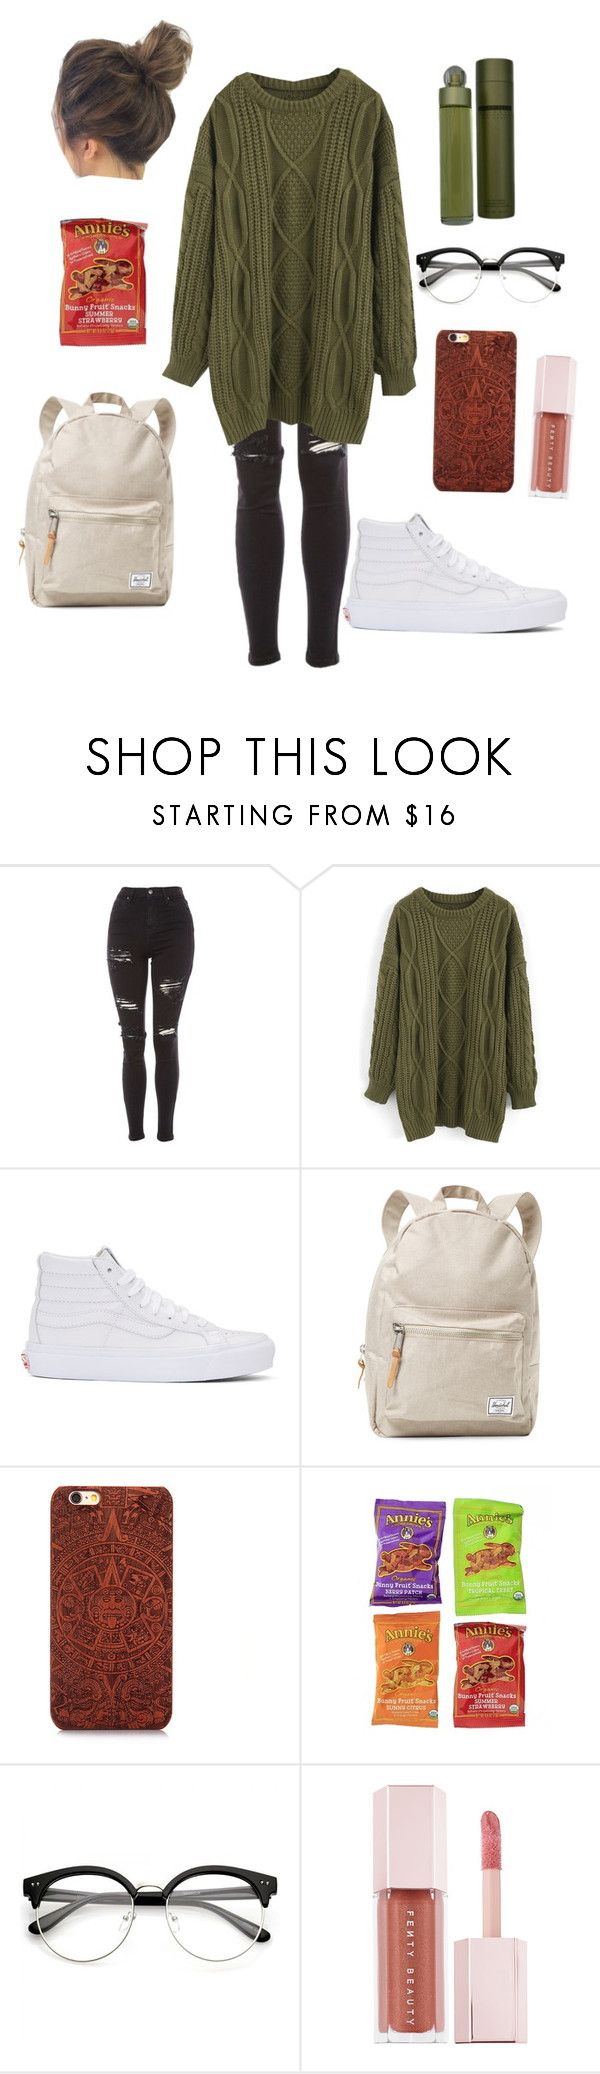 """Fall#3"" by haley-hetrick on Polyvore featuring Topshop, Chicwish, Vans, Herschel Supply Co., Puma and Perry Ellis"